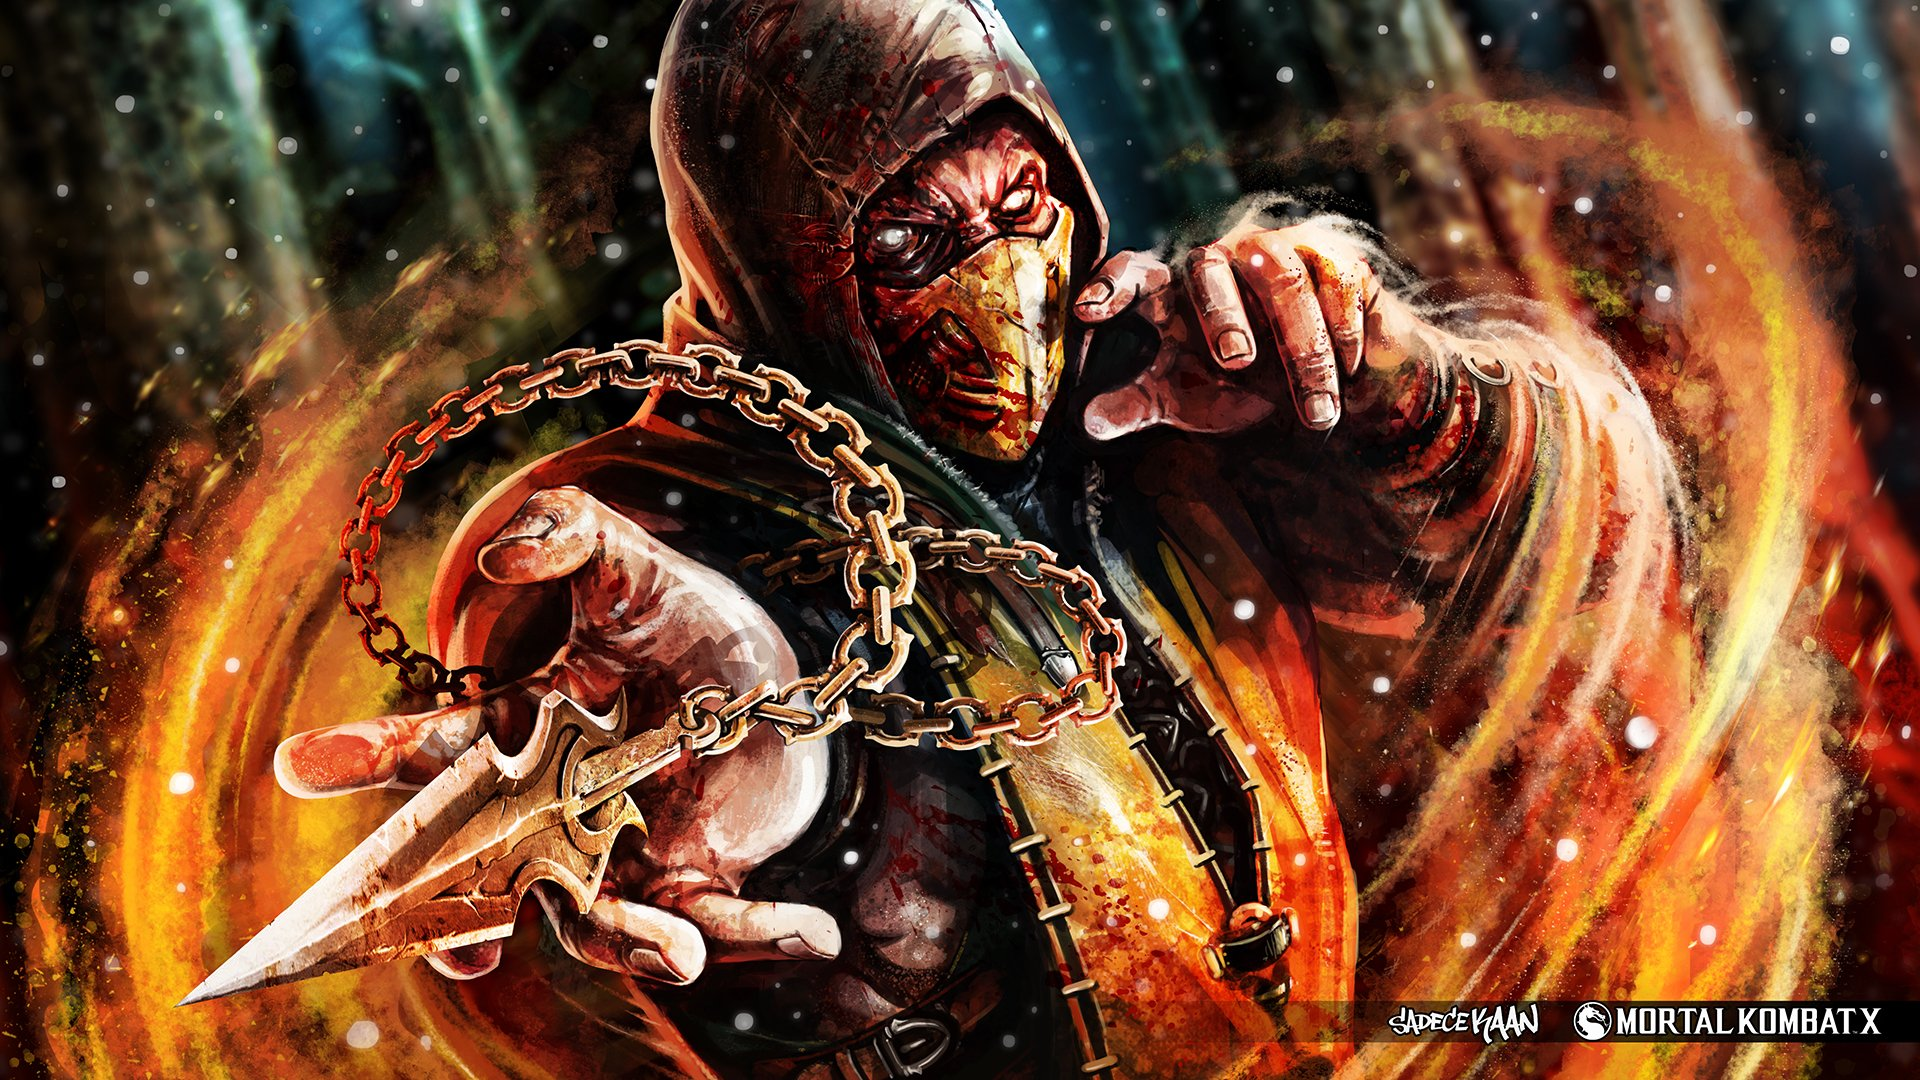 74 Mortal Kombat X Hd Wallpapers Background Images Wallpaper Abyss